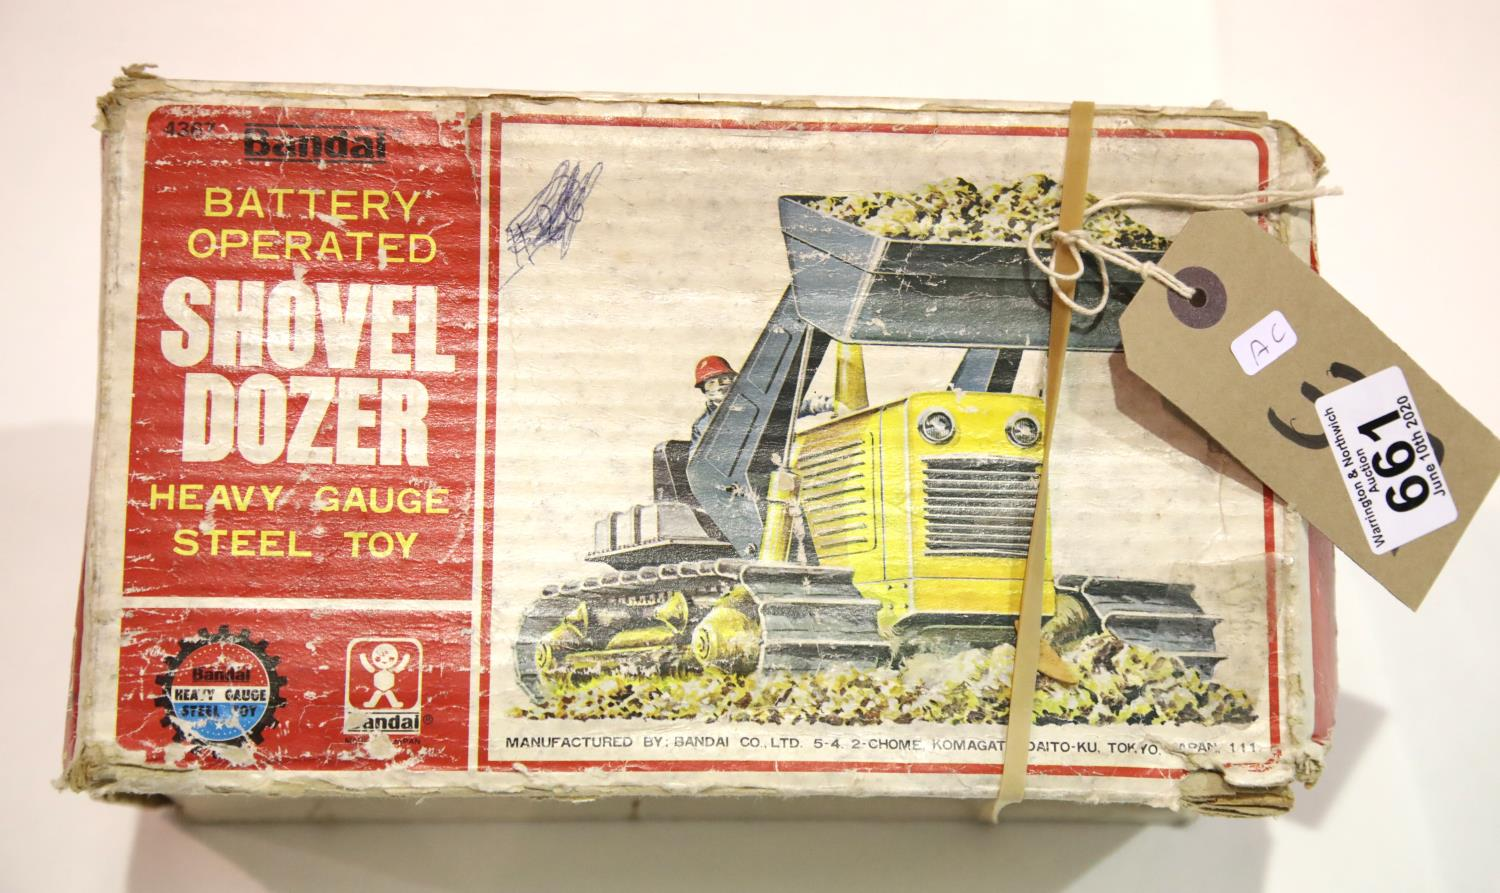 Lot 661 - Bandai battery operated shovel dozer steel toy. P&P Group 2 (£18+VAT for the first lot and £2+VAT